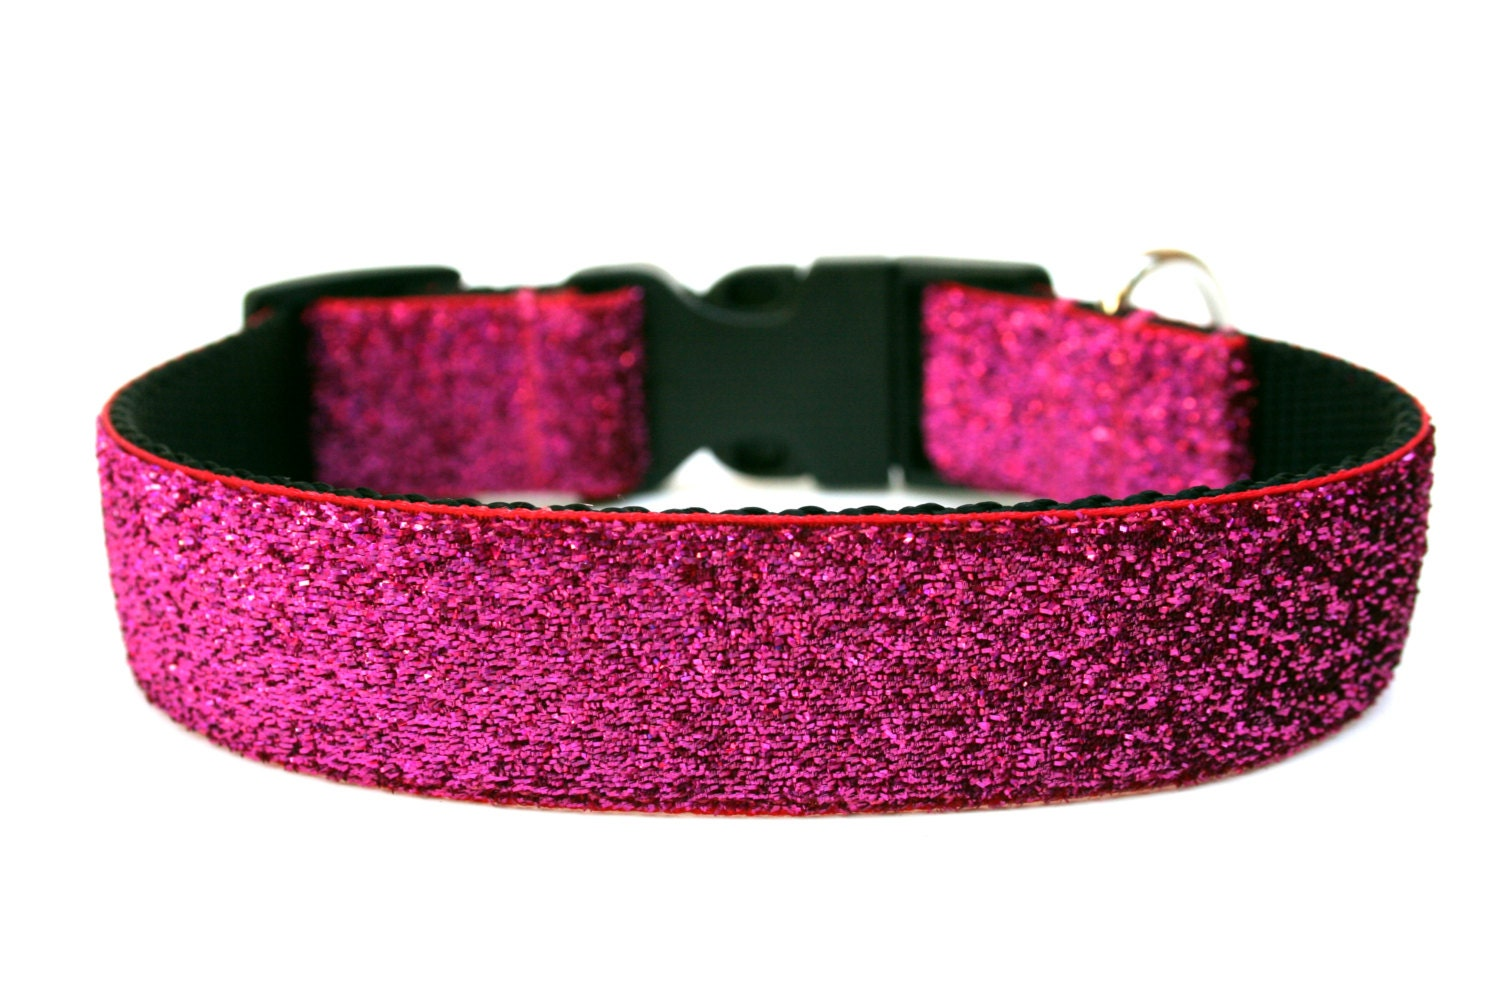 Hot Pink Dog Collar 1 Pink Glitter Dog Collar - photo#42